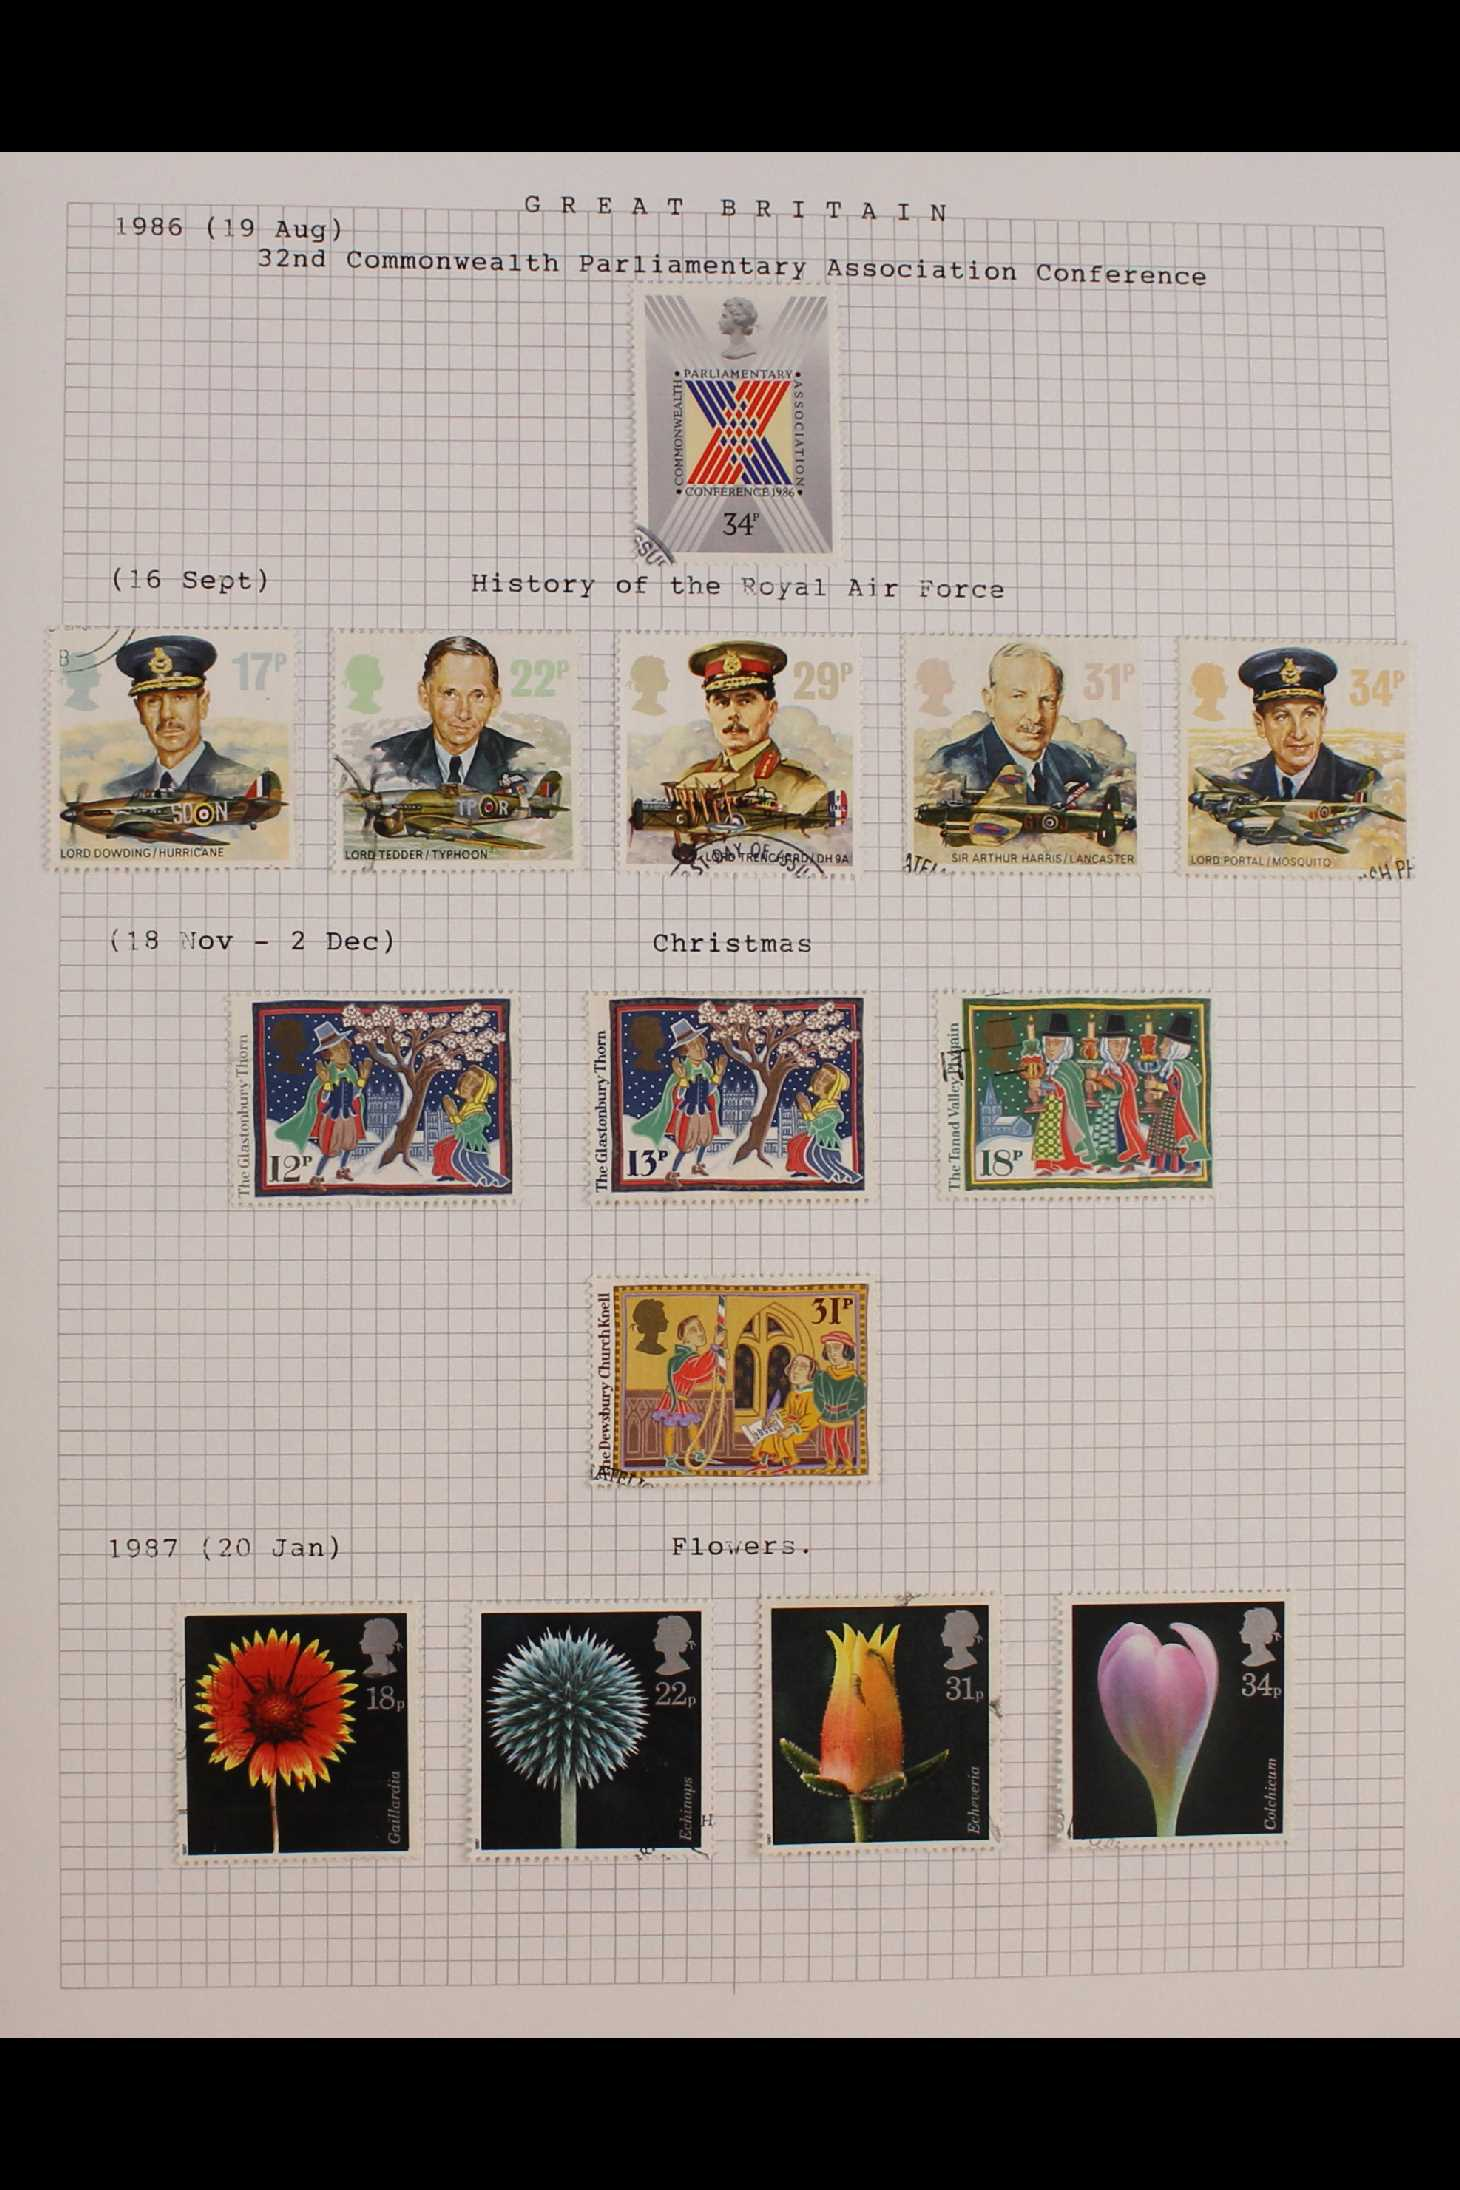 GB.ELIZABETH II 1953-1999 fine used collection in two albums with extensive Wilding & - Image 8 of 18